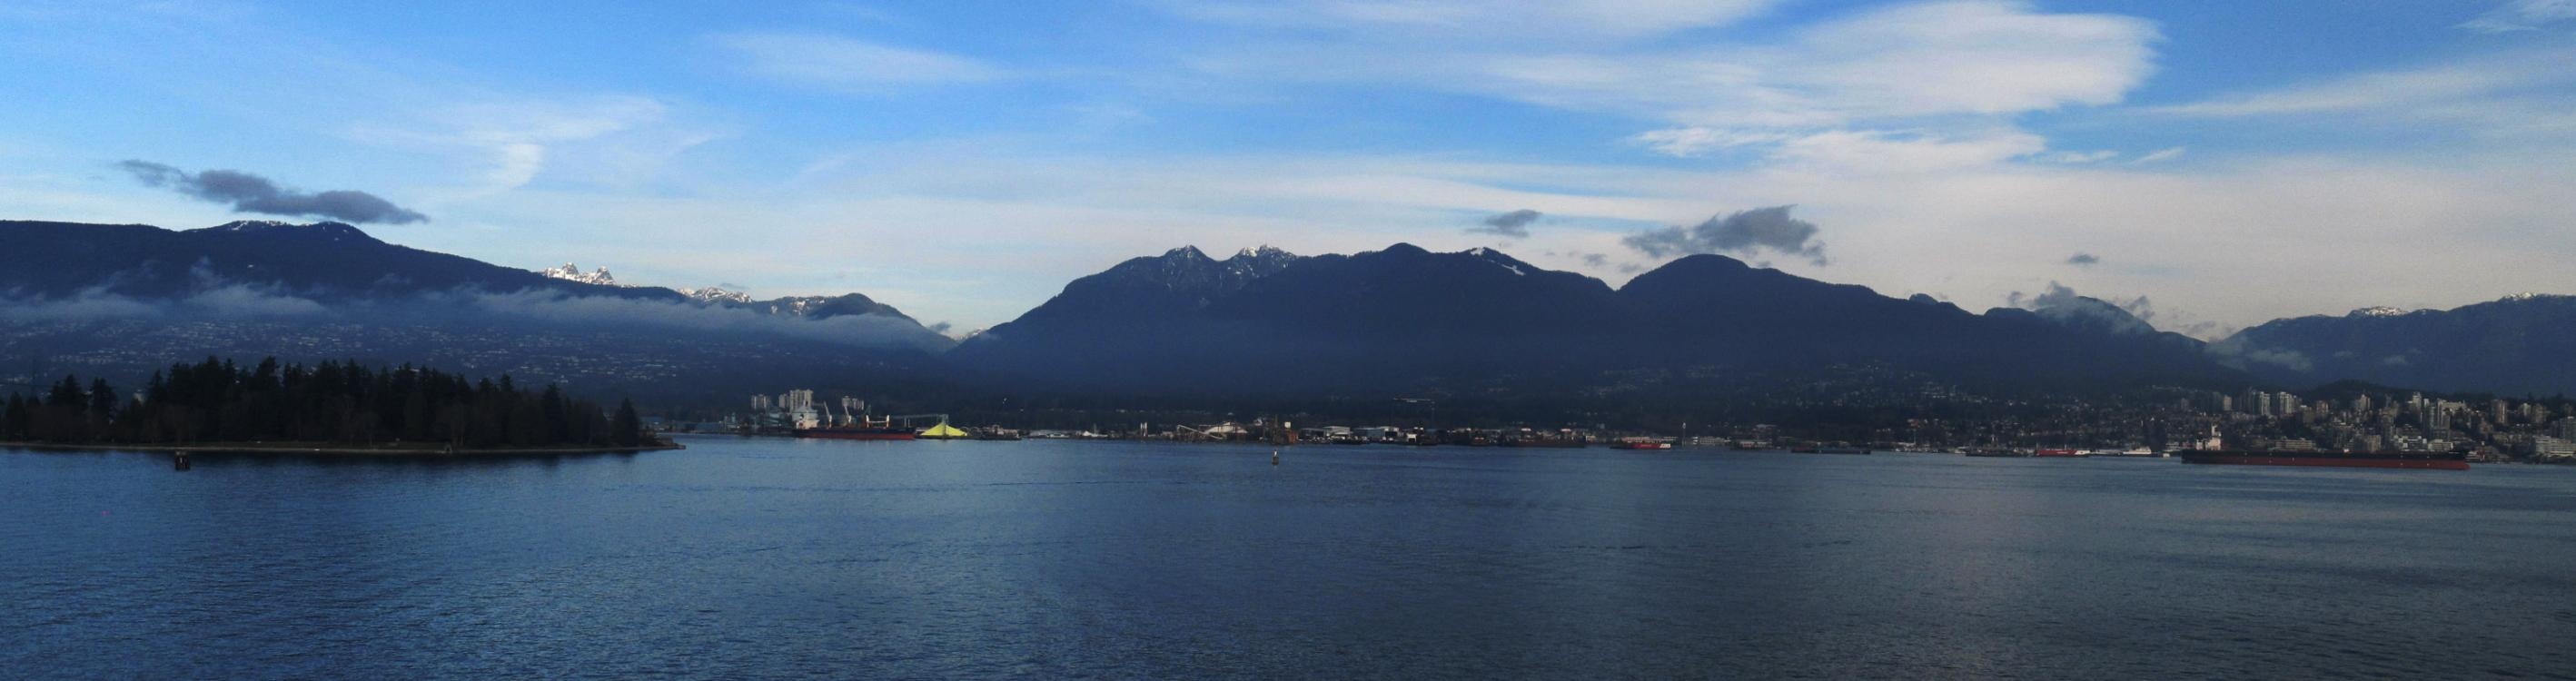 Die North Shore Mountains bei Vancouver.